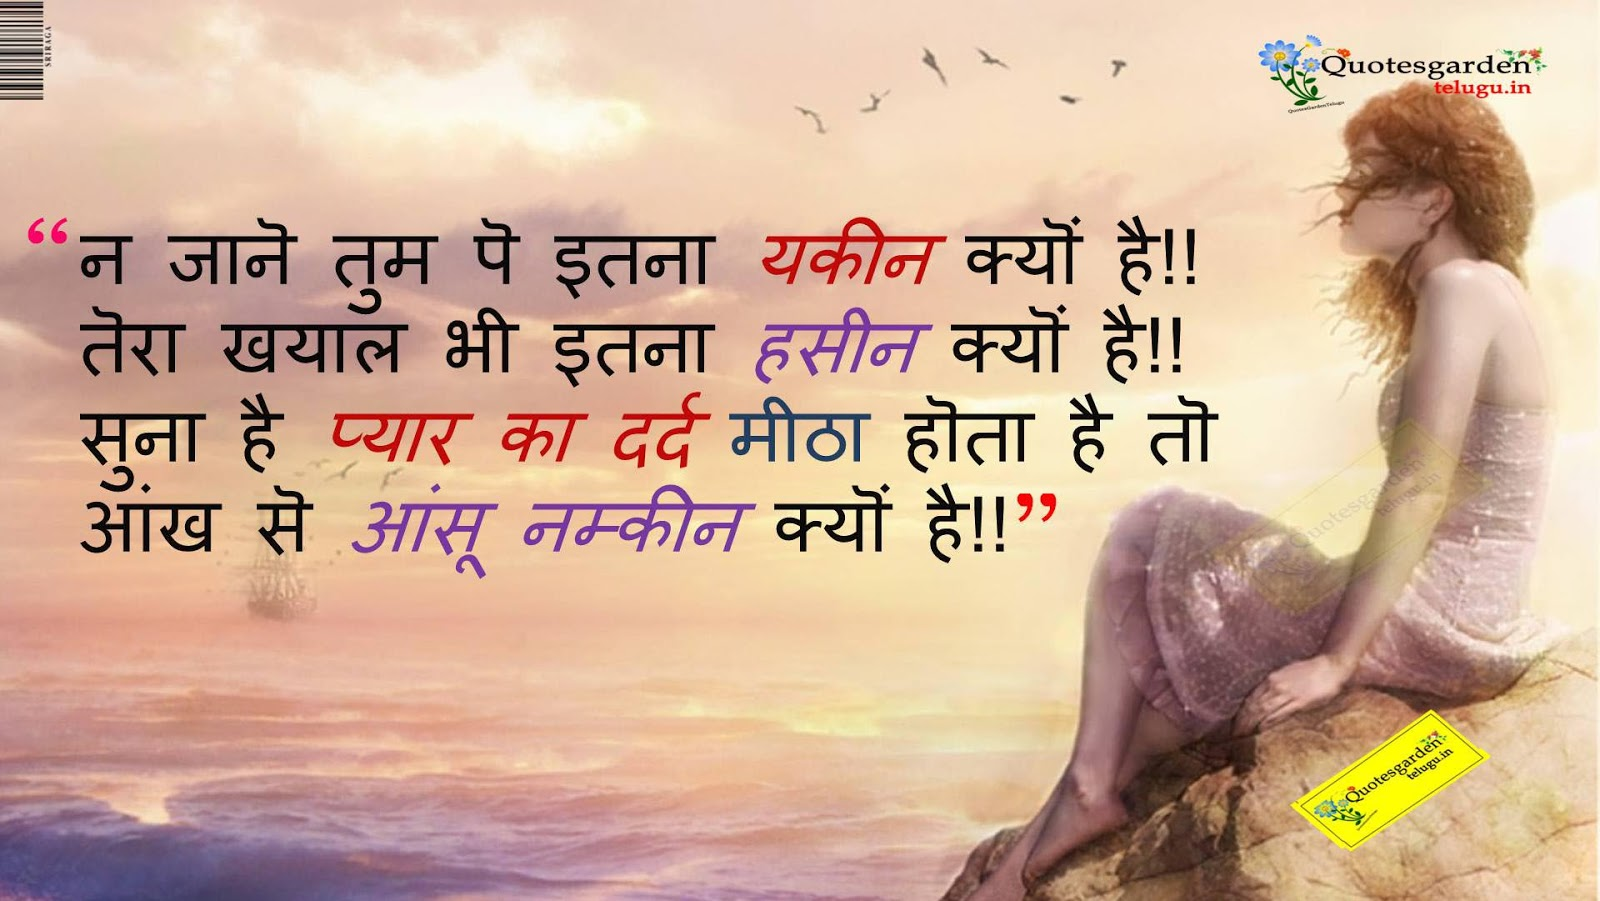 Quotes Best Love Quotes In Hindi Best Hindi Love Quotes - True Love Poems For Him From The Heart Hindi - HD Wallpaper